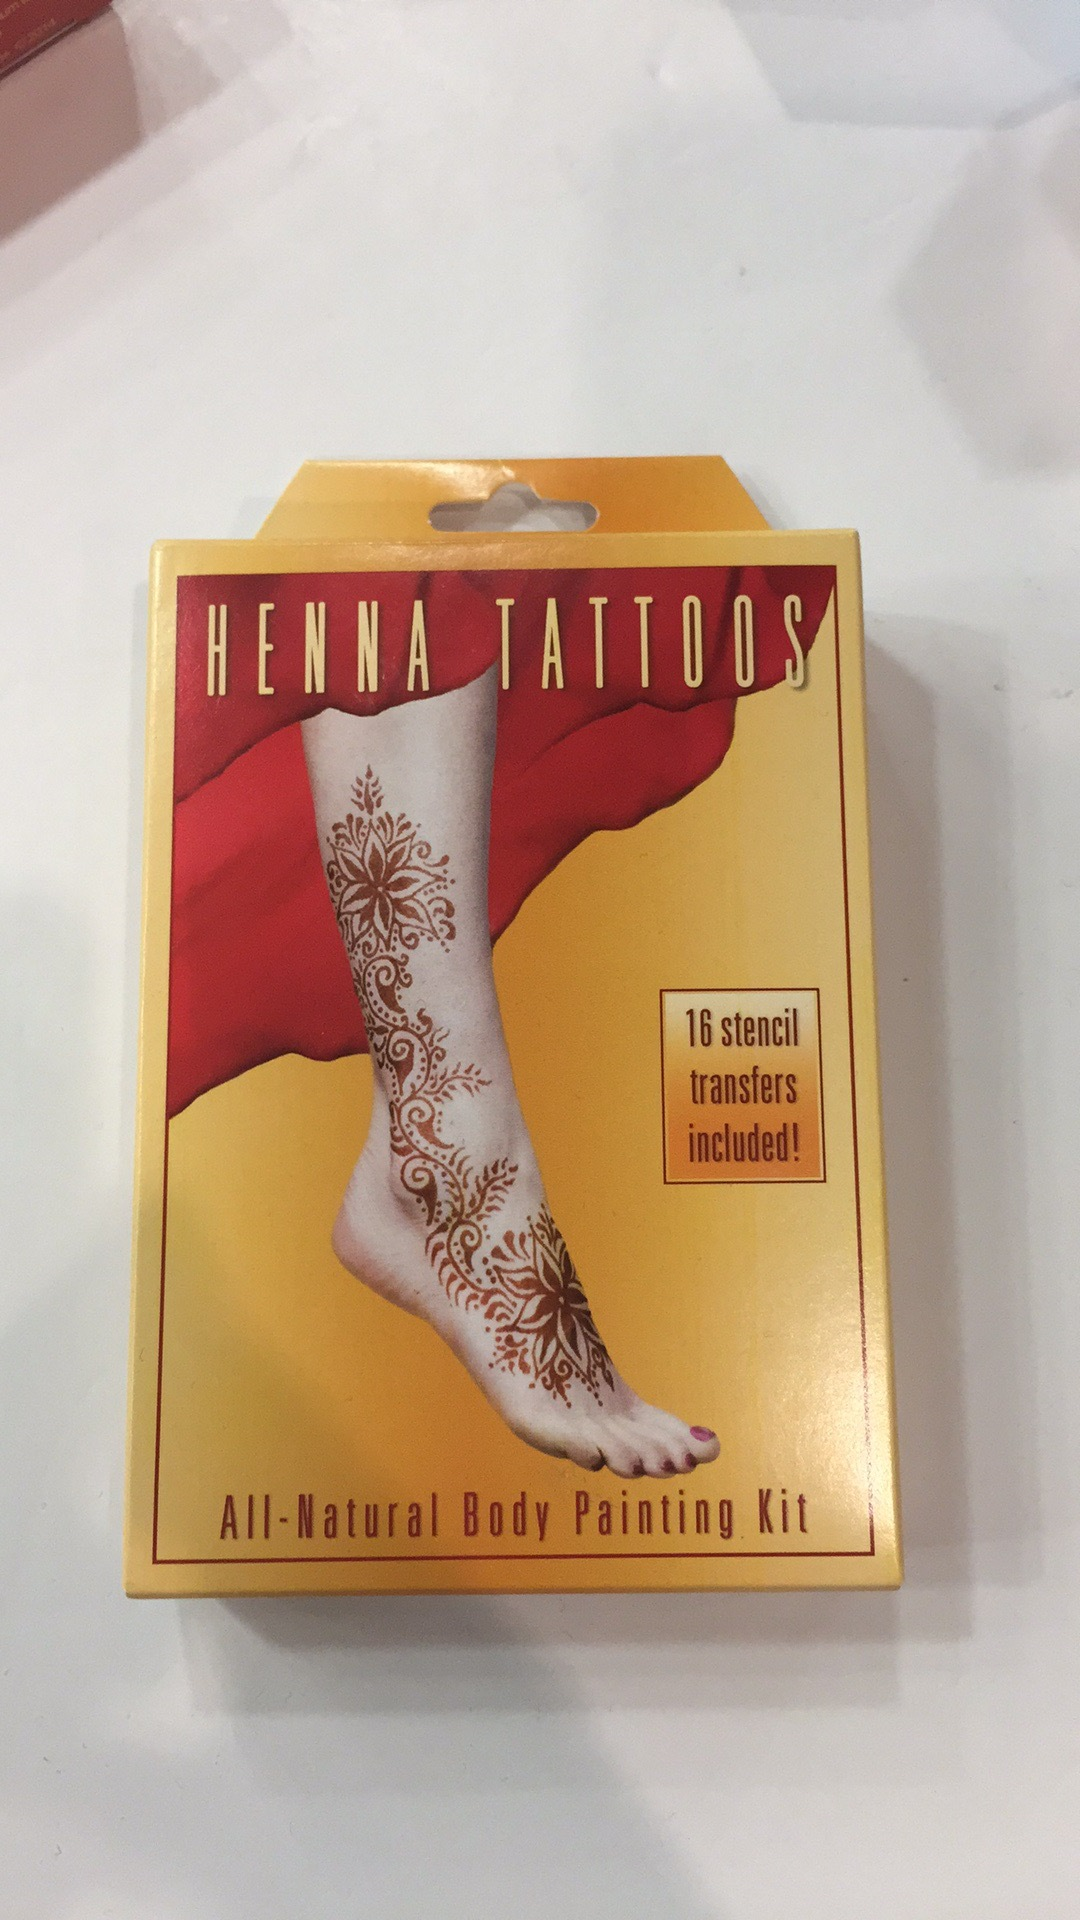 Henna Tattoos Kit The Natural Products Brands Directory